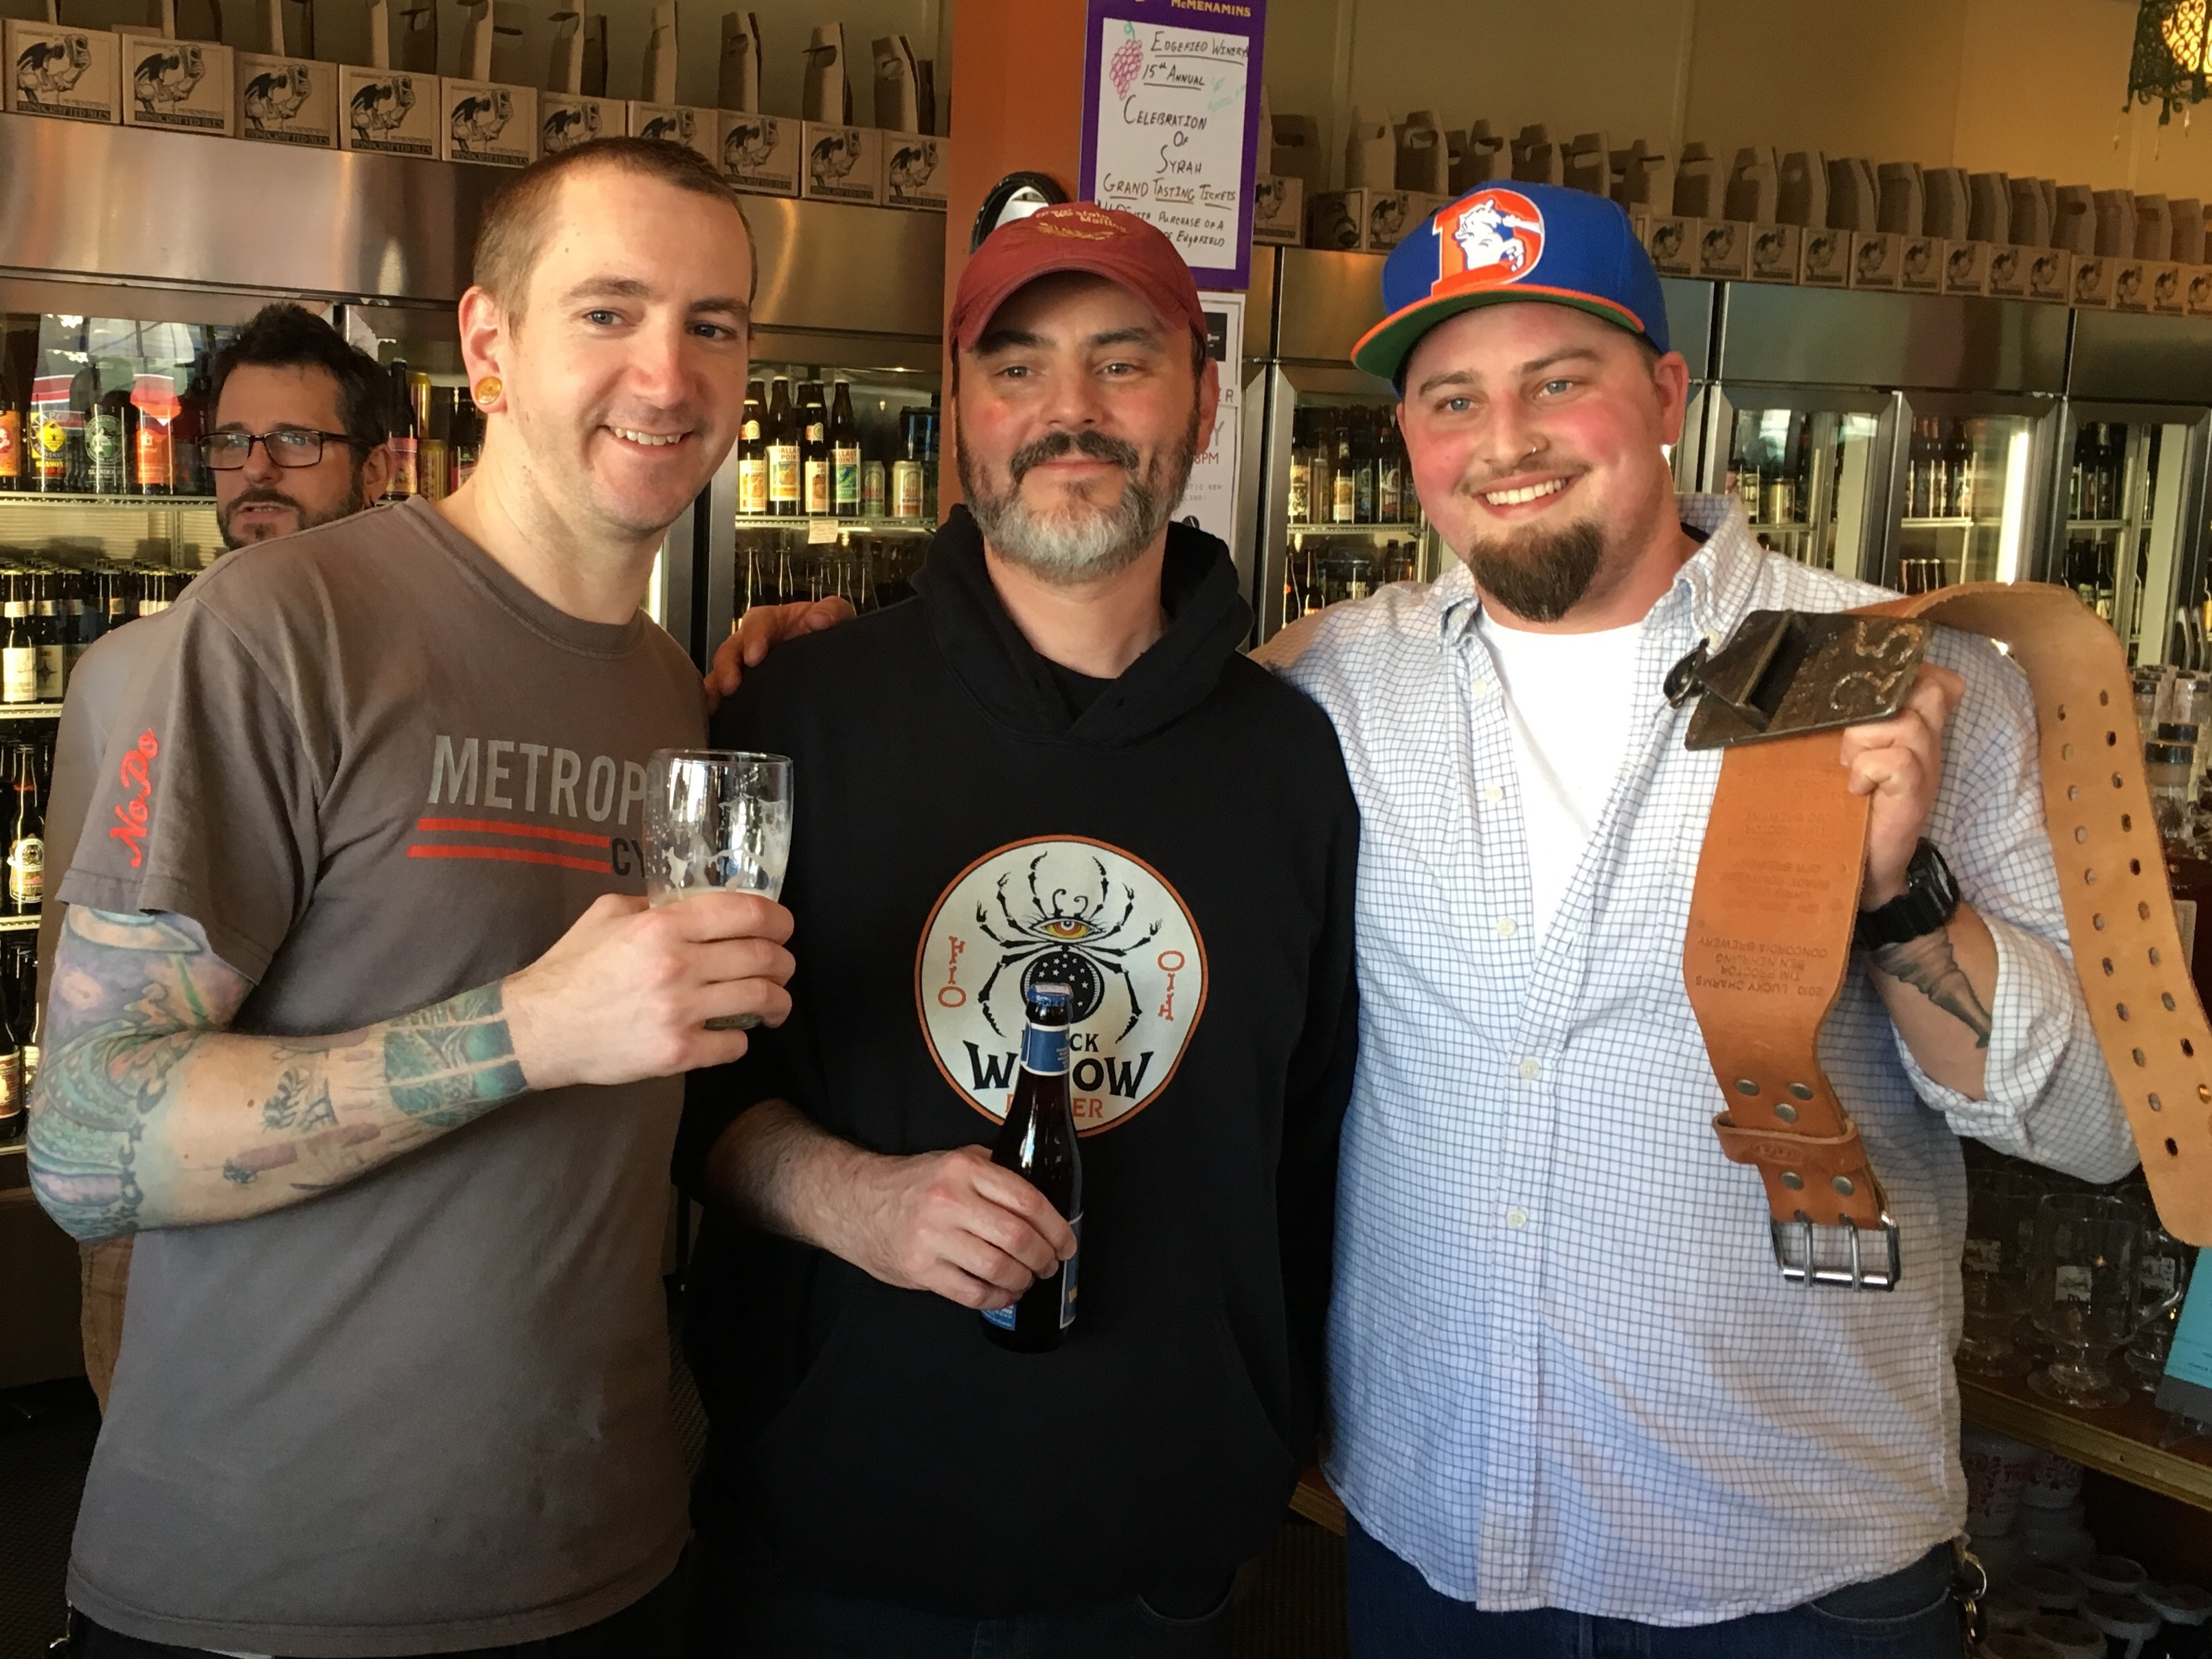 Jesse Grover of McMenamins On The Columbia (right), winner of the 2016 Battle For The Belt pictured alongside Matt Carver (center) and Dave Kosanke (left) from Kennedy School Concordia Brewery at 23rd Avenue Bottle Shop.